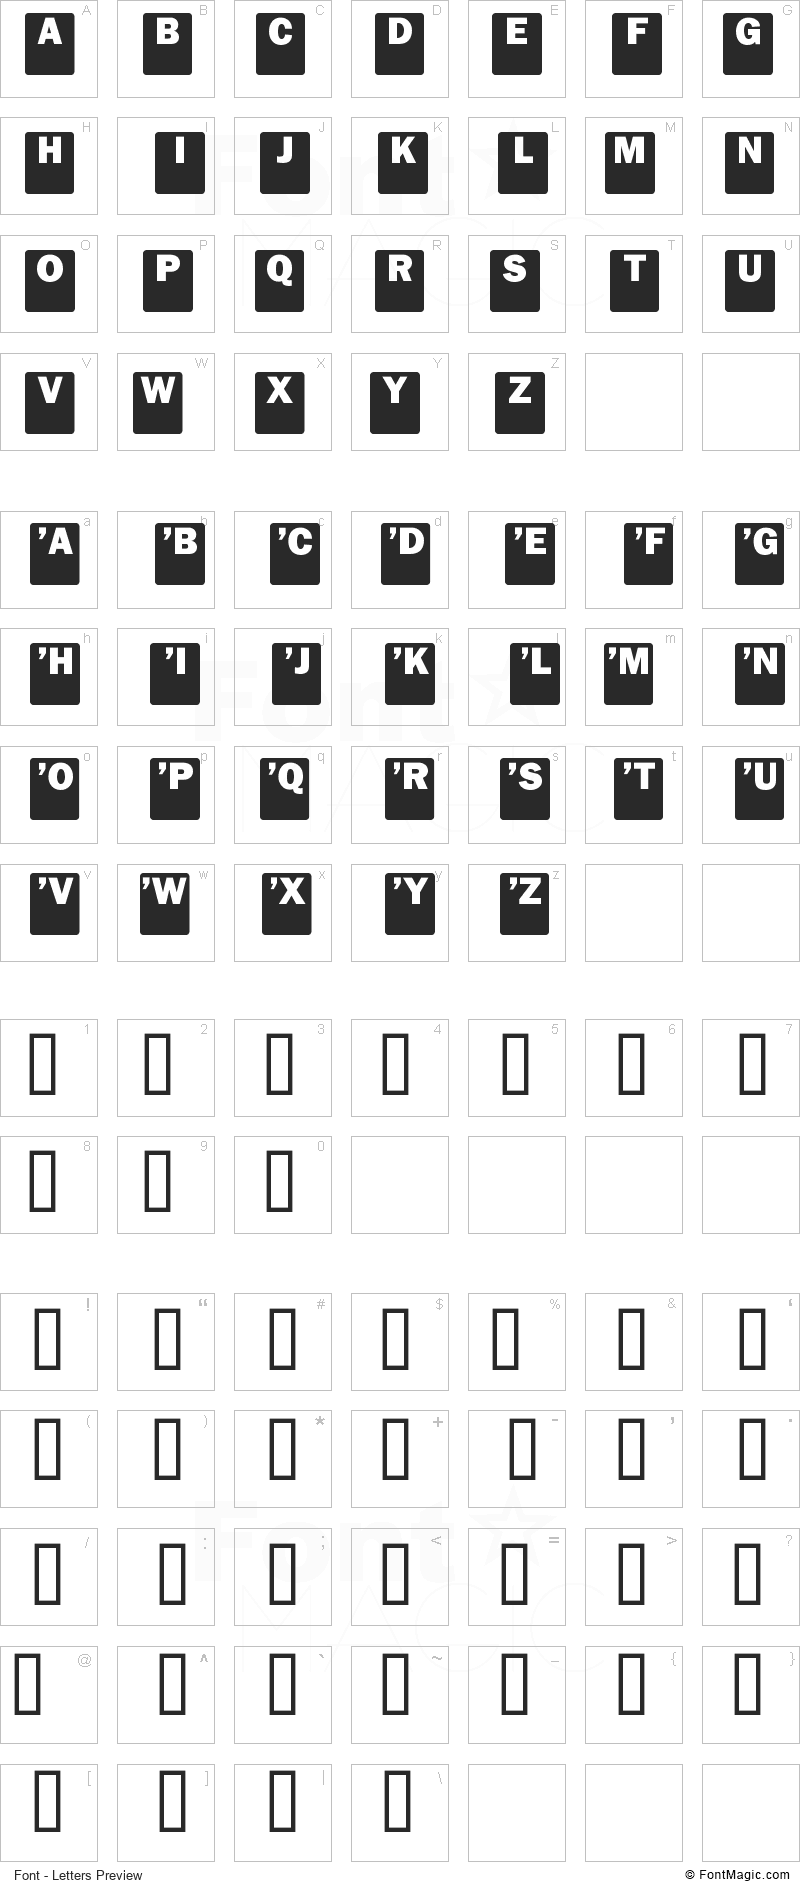 Drop Caps Font - All Latters Preview Chart